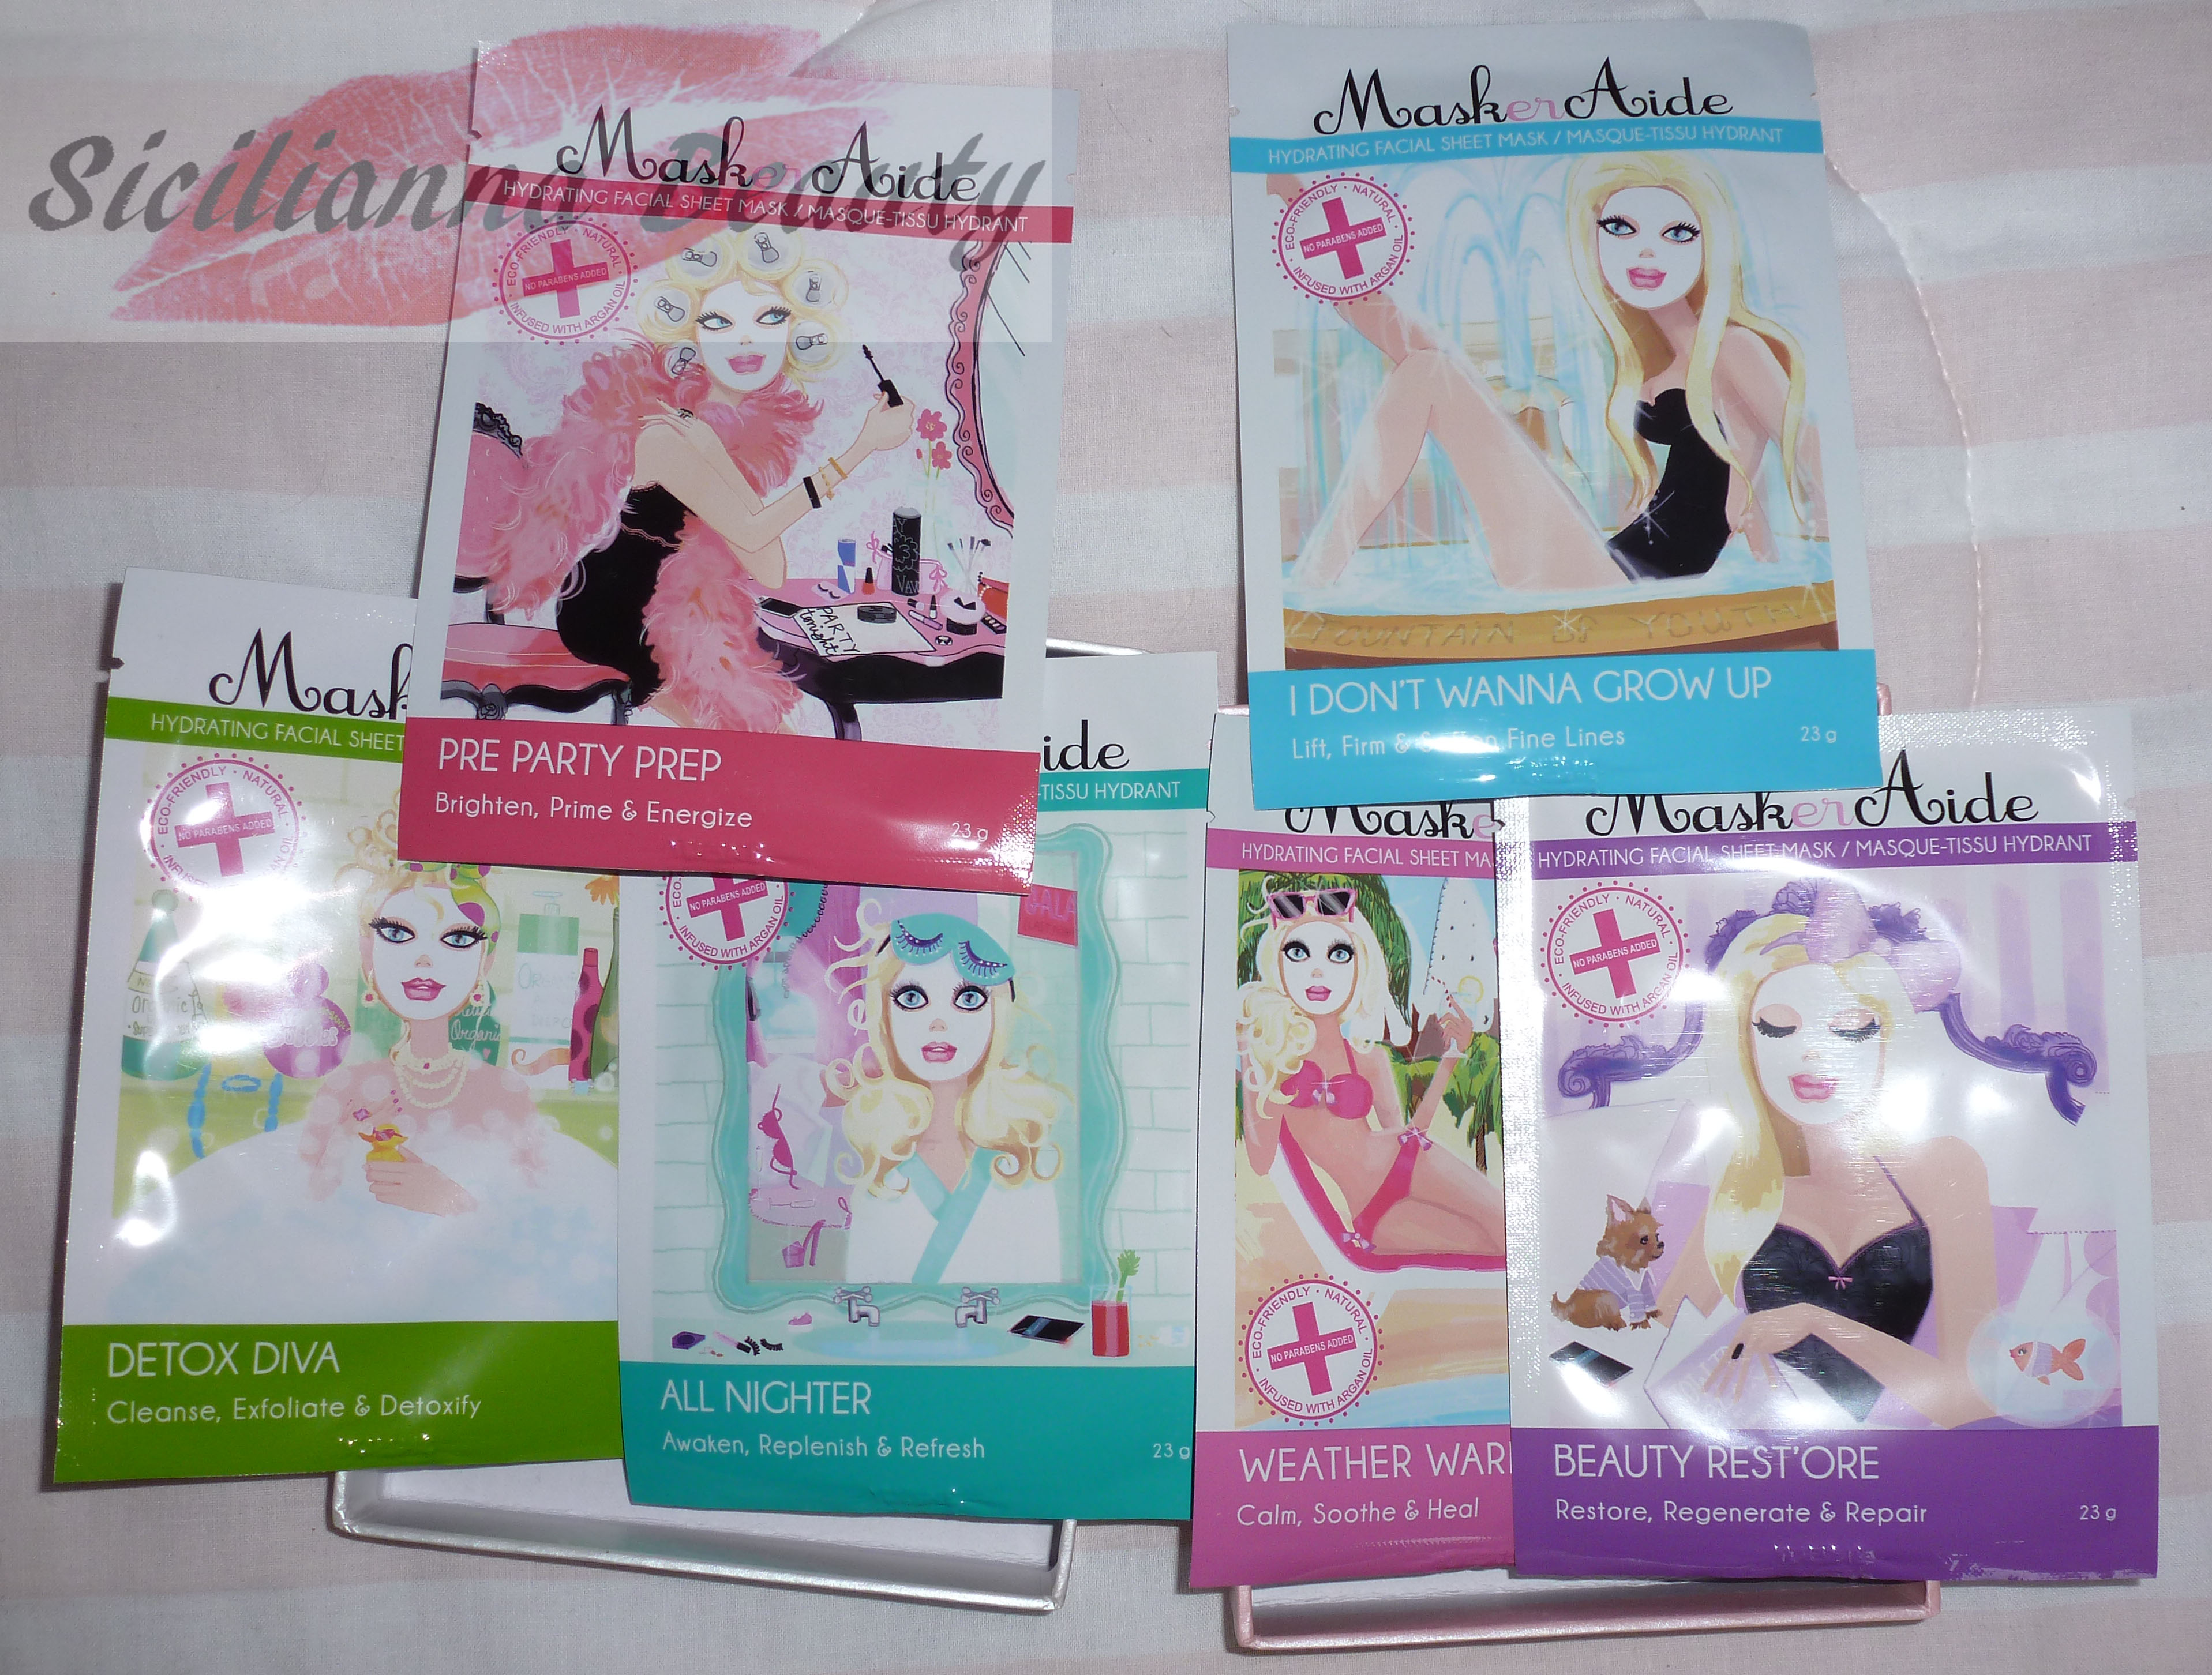 REVIEW & GIVEAWAY (CLOSED- WINNER ANNOUNCED): MaskerAide Facial Sheet Masks